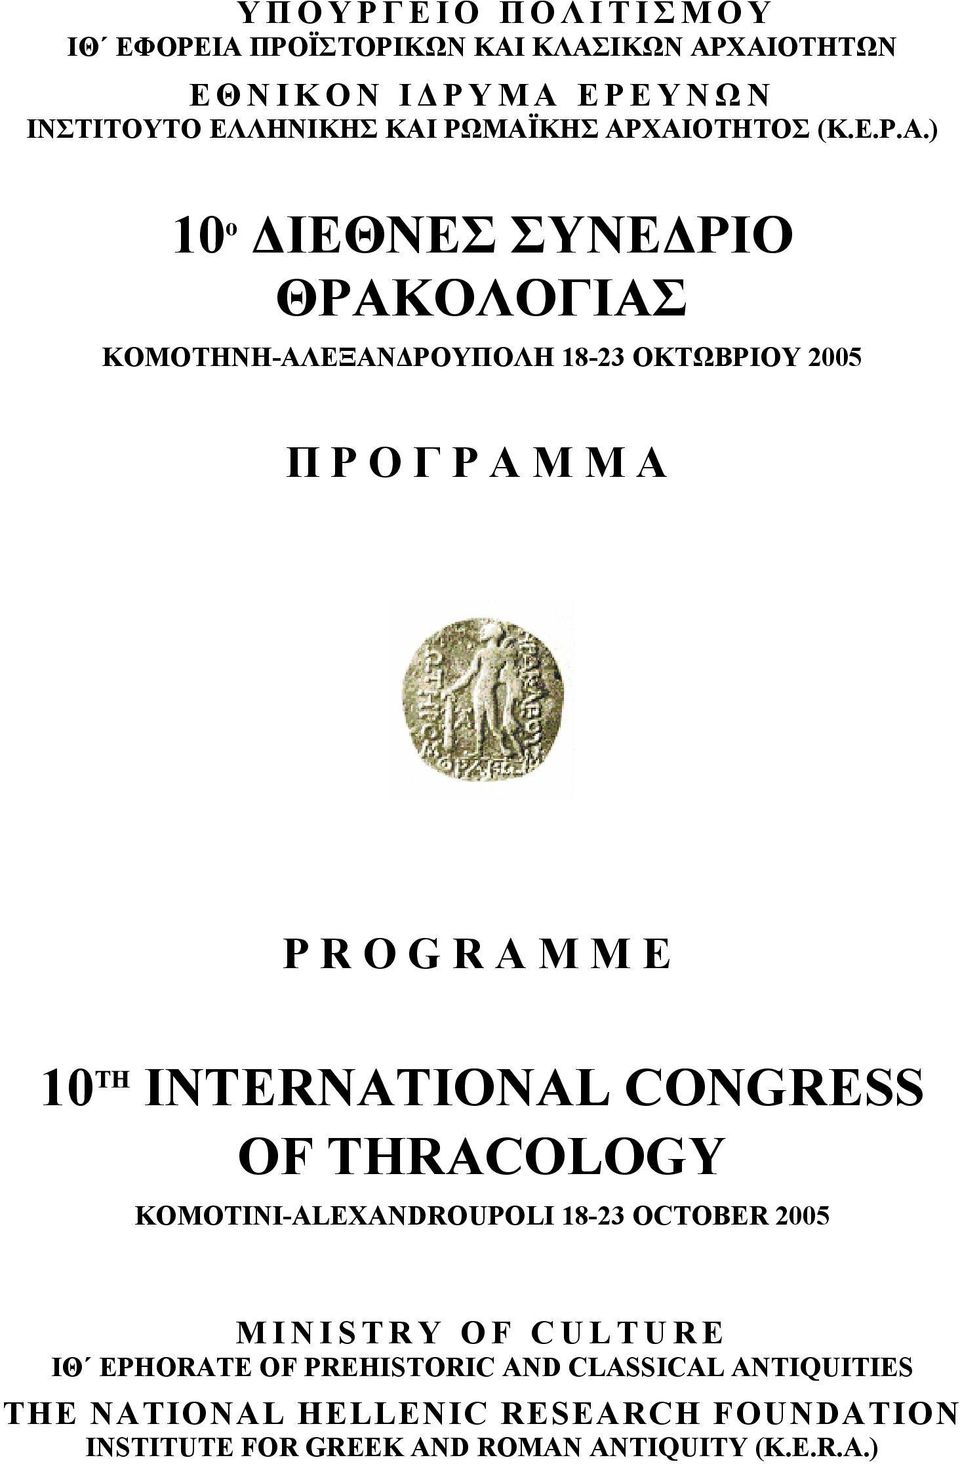 PROGRAMME 10 TH INTERNATIONAL CONGRESS OF THRACOLOGY KOMOTINI-ALEXANDROUPOLI 18-23 OCTOBER 2005 MINISTRY OF CULTURE ΙΘ